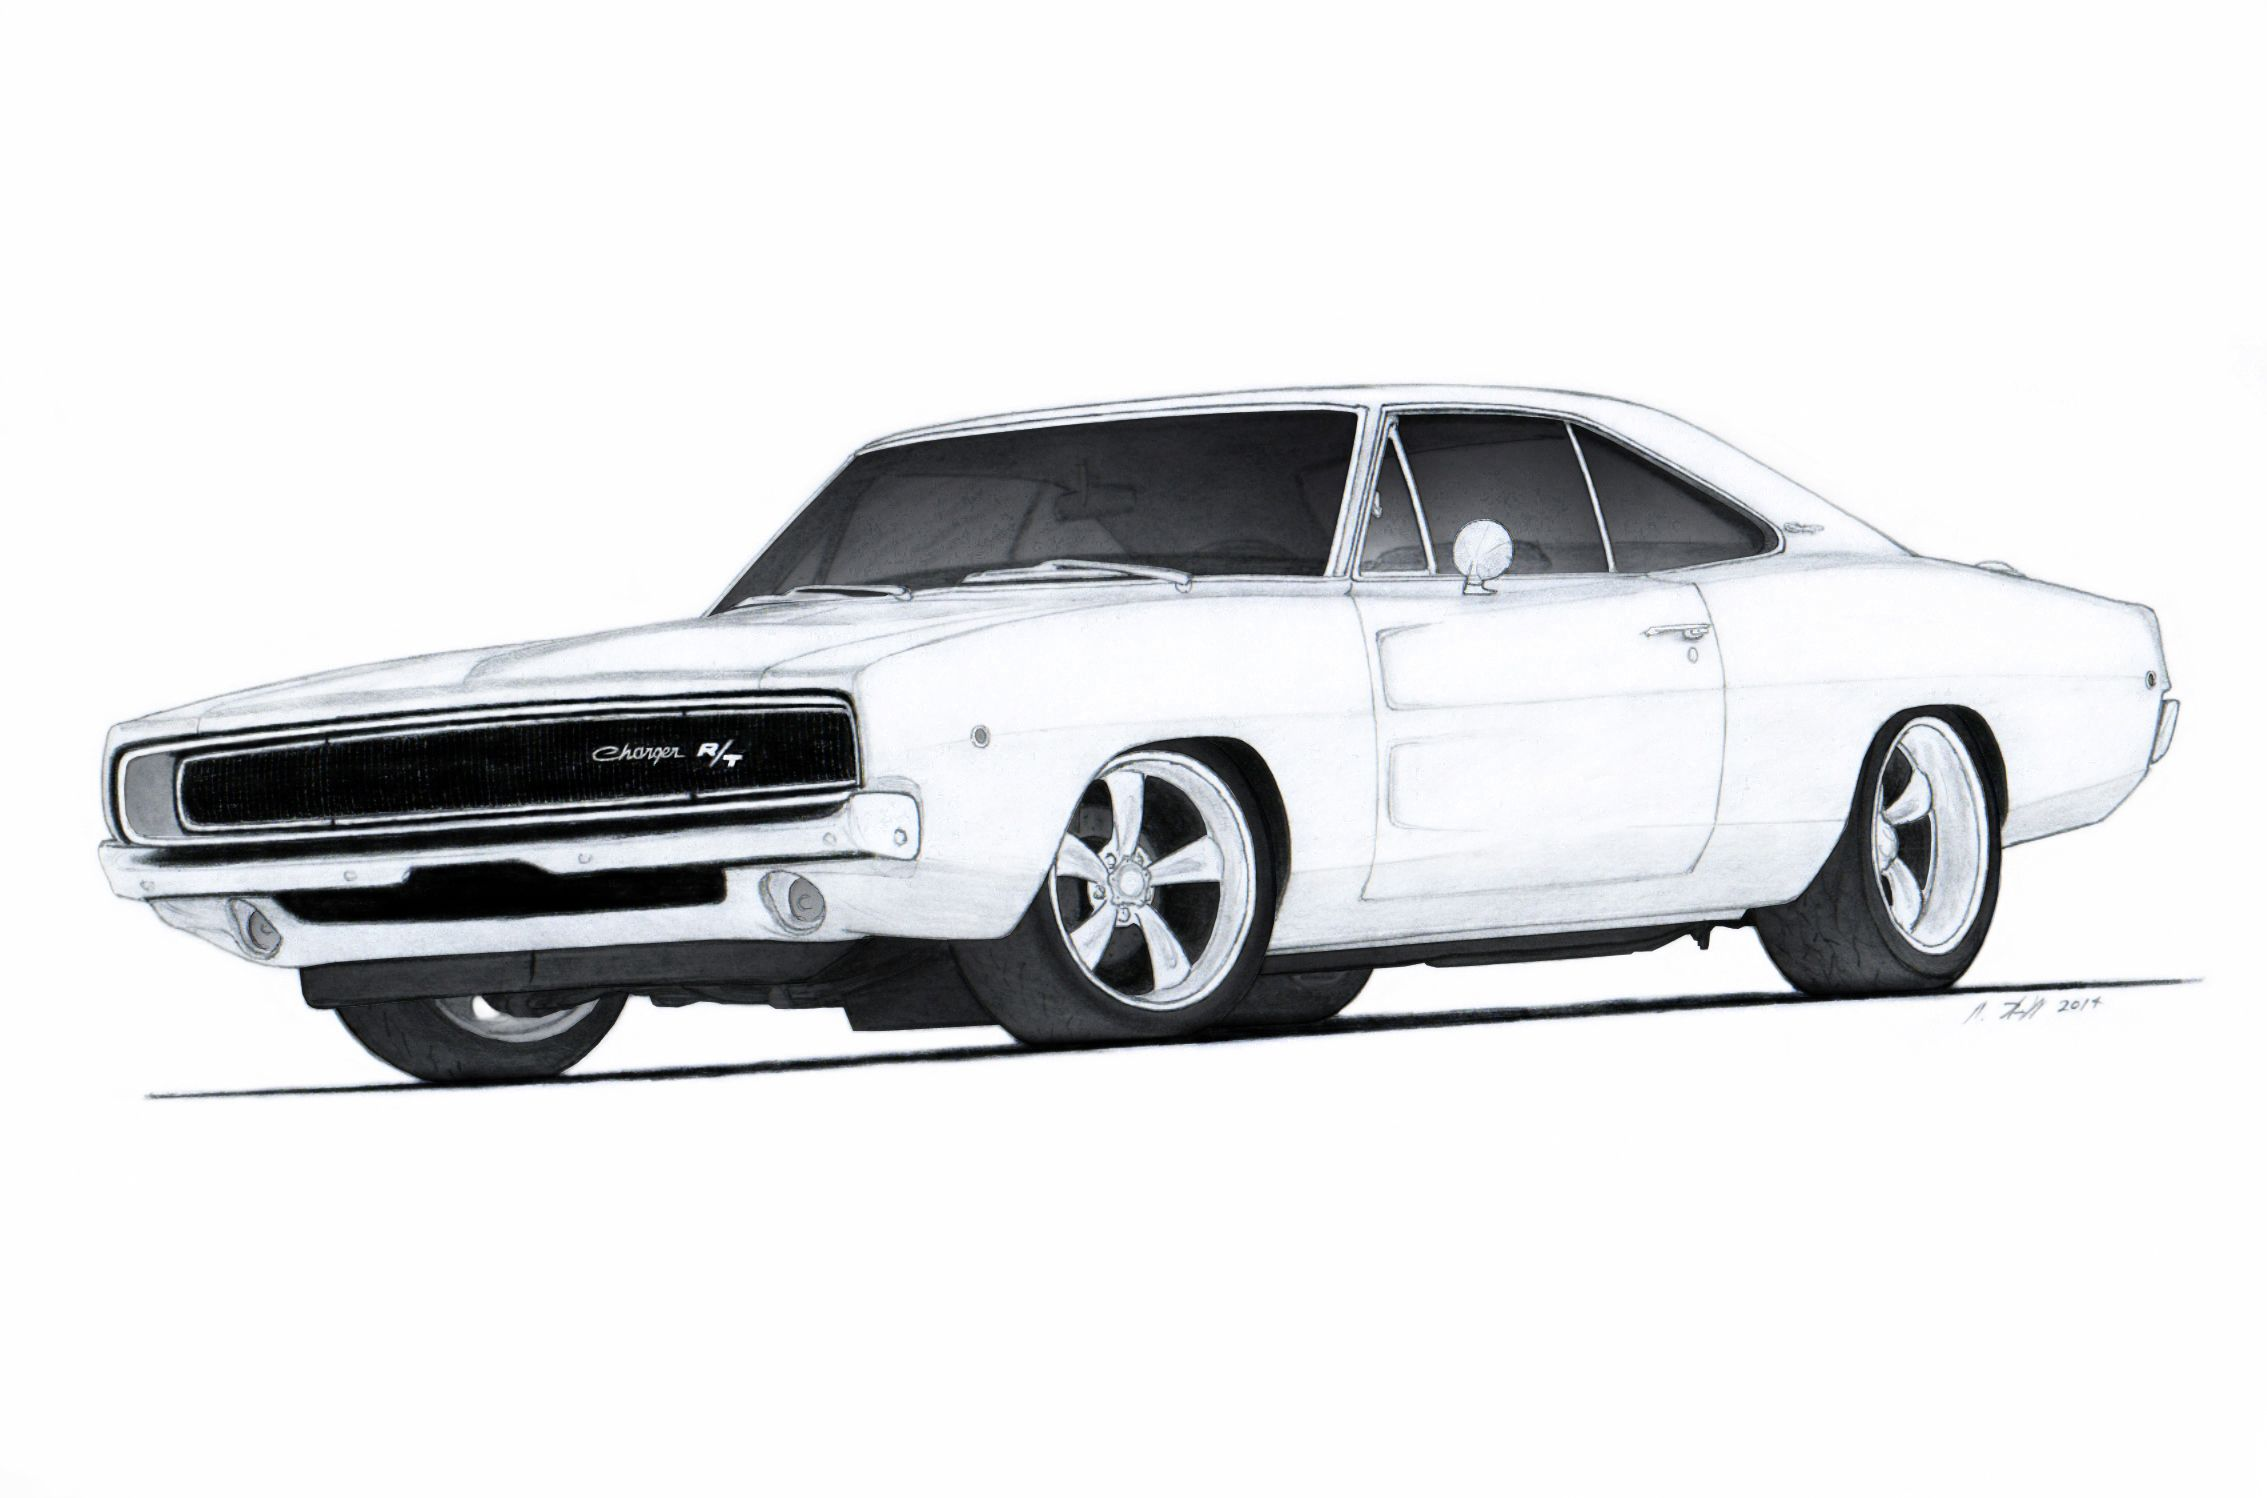 1968 Dodge Charger R/T Drawing by Vertualissimo.deviantart.com on ...